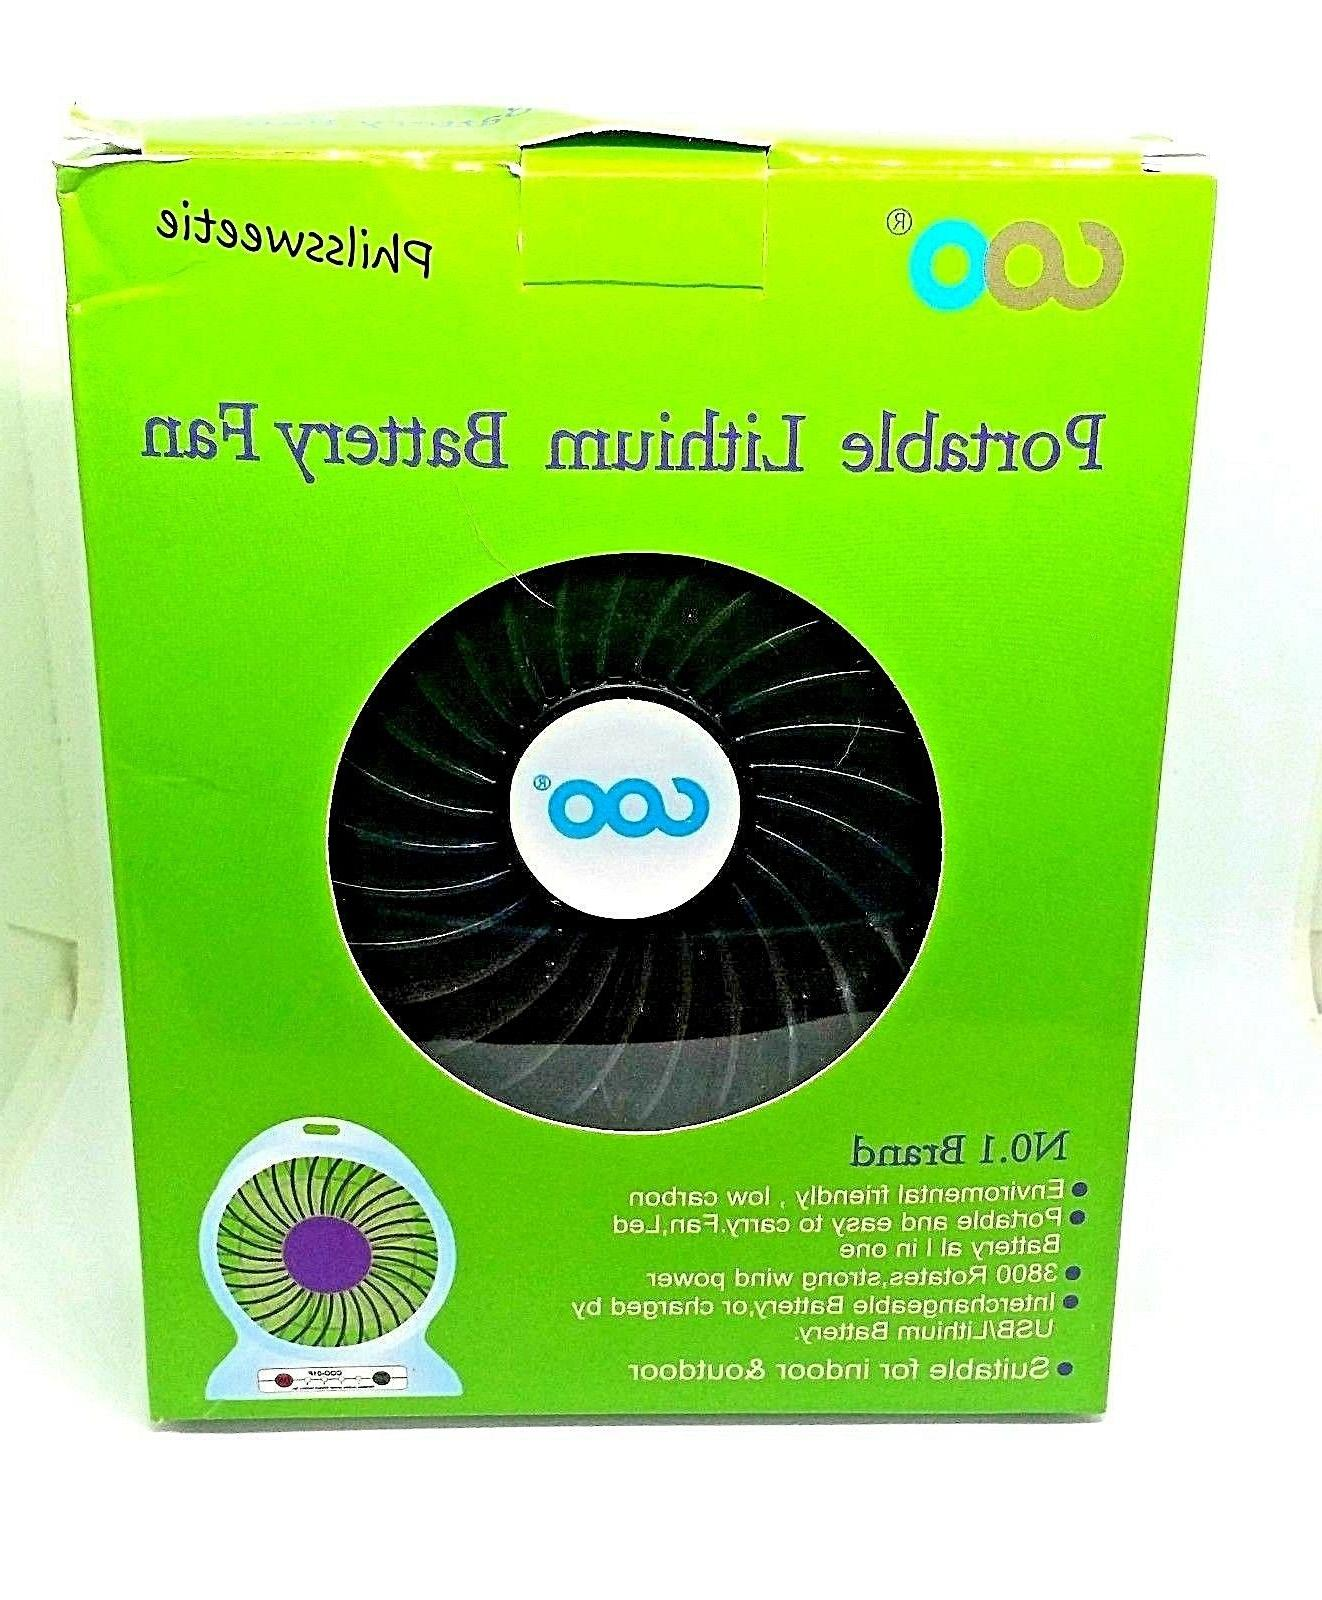 Small Portable Lithium Battery Fan - USB Charger For Phone -